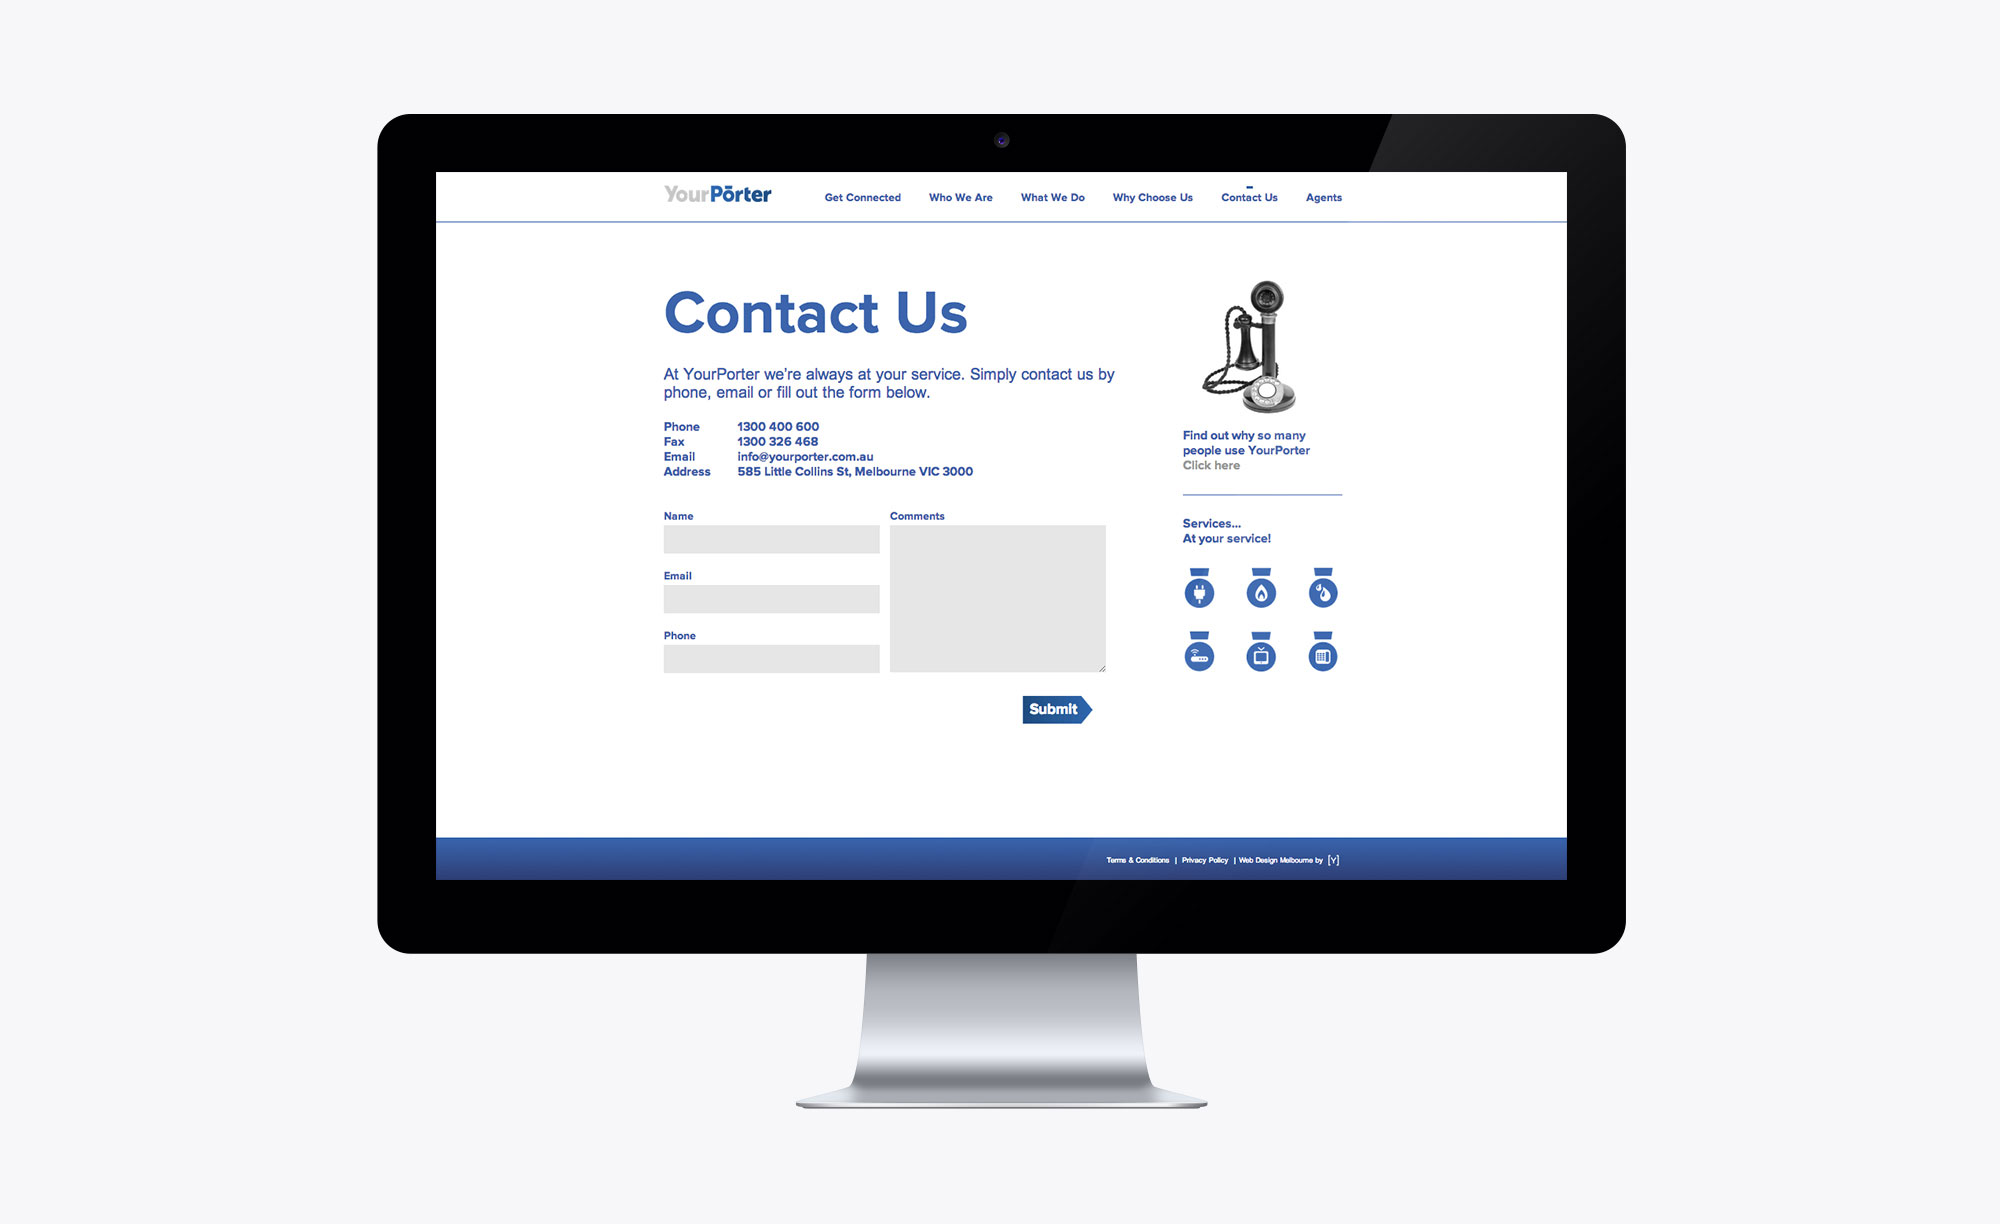 Contact page on the Your Porter website